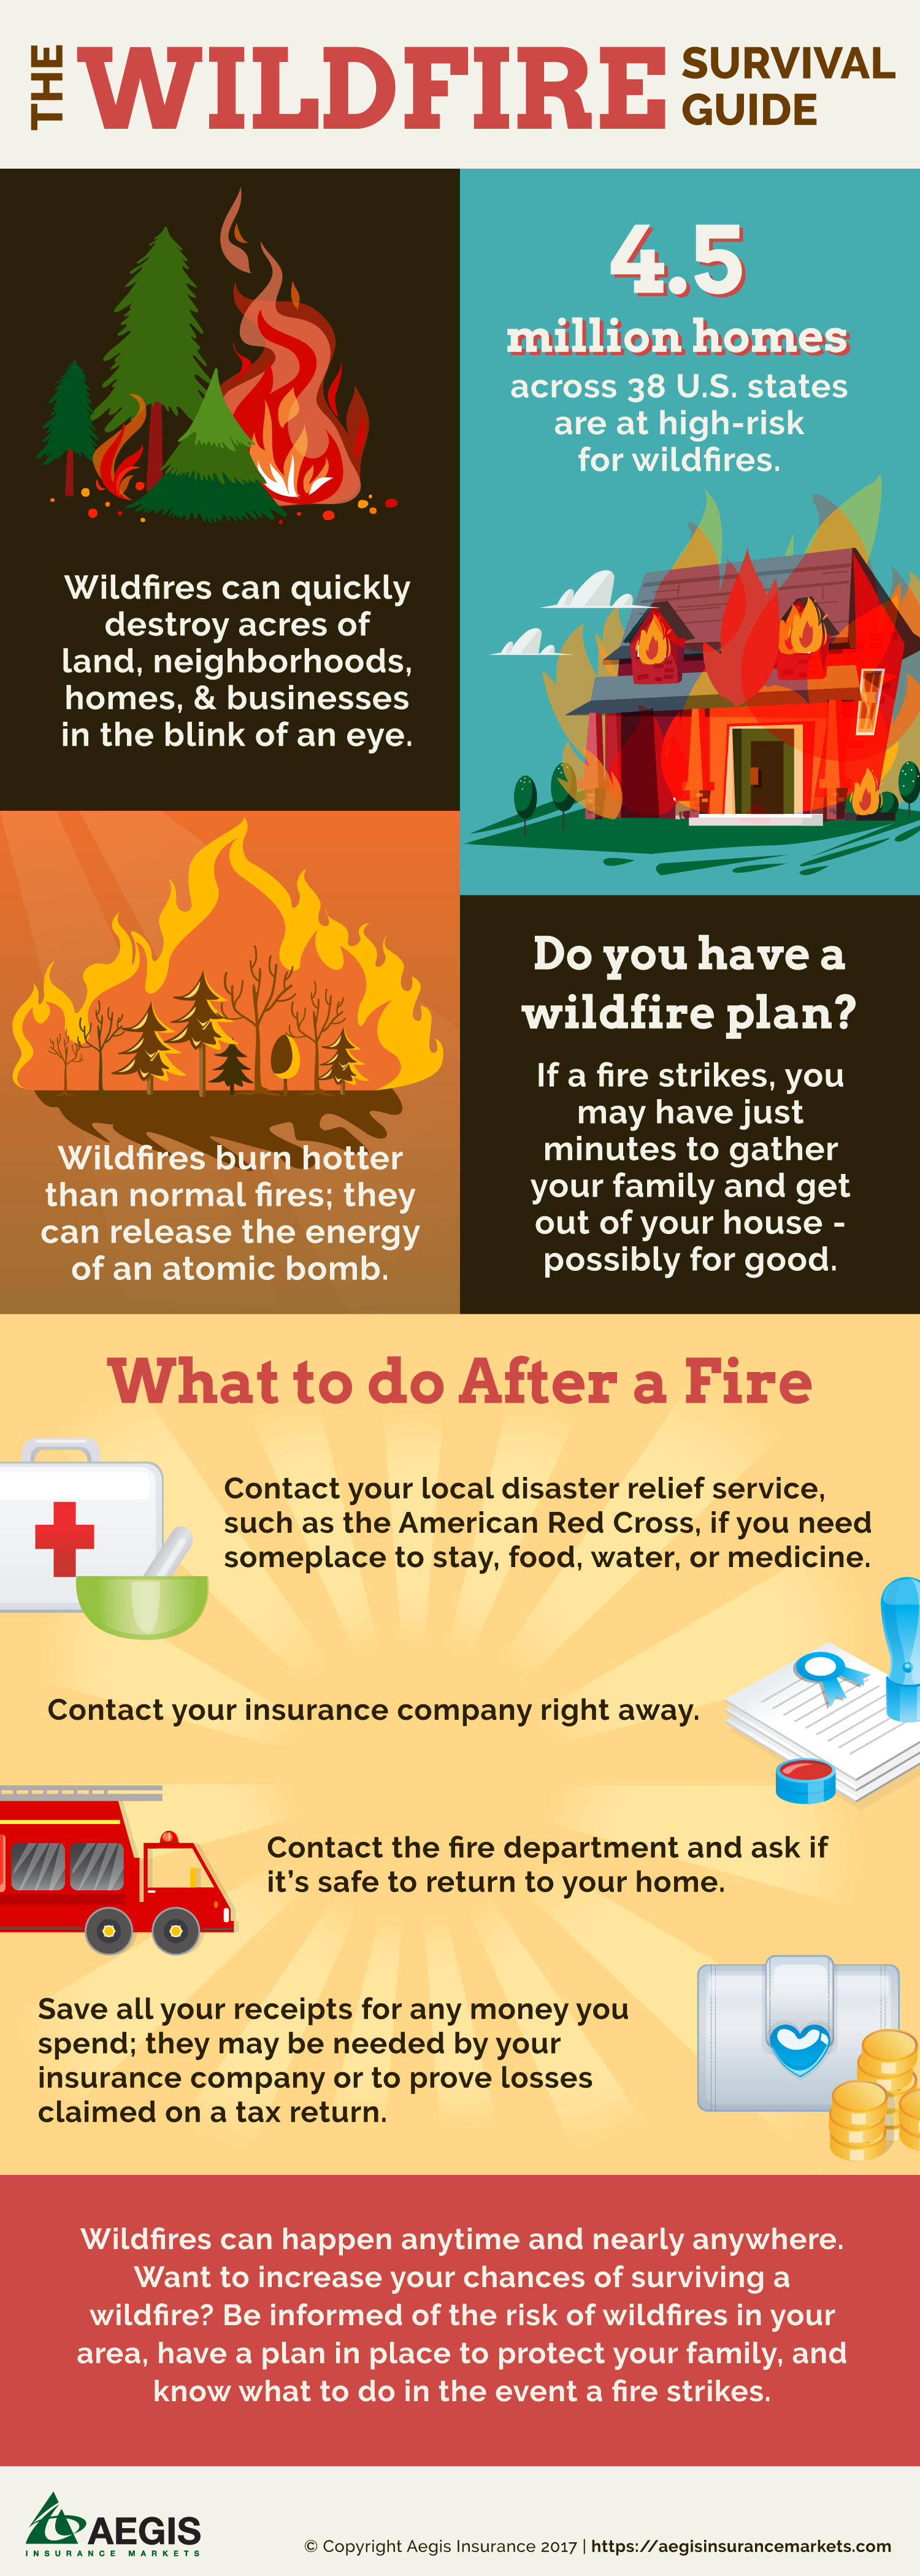 Wildfire Survival Guide Infographic